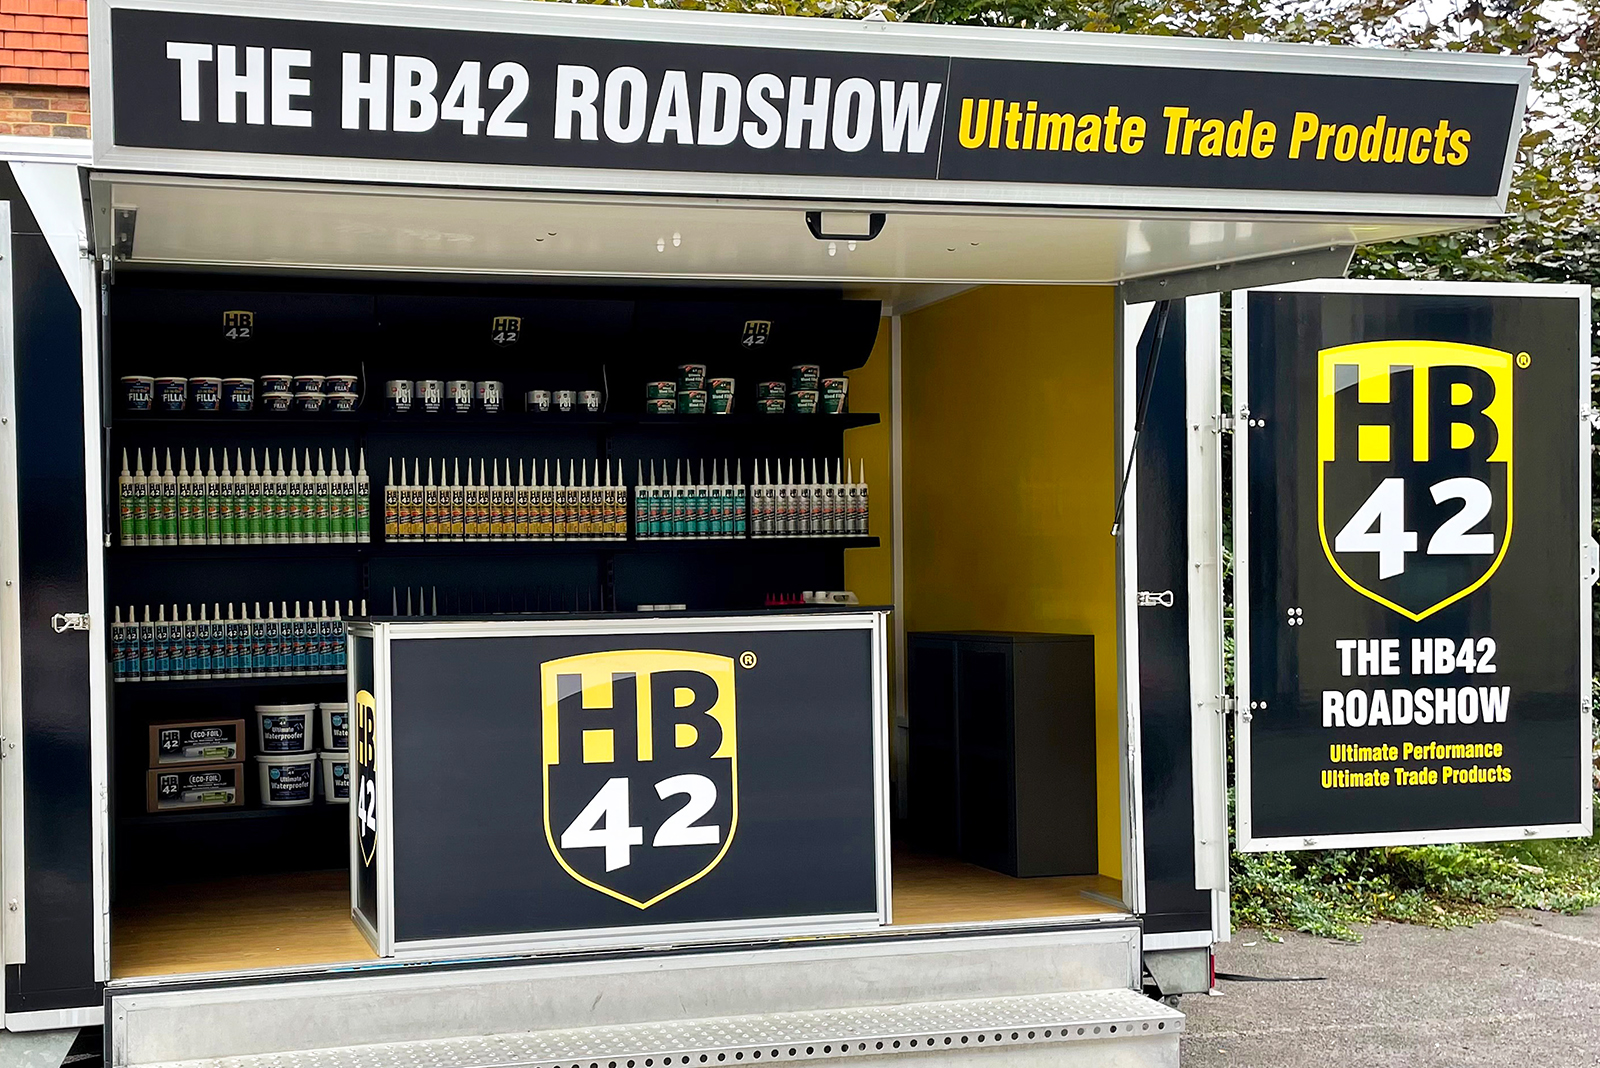 HB42 launches its Ultimate Roadshow